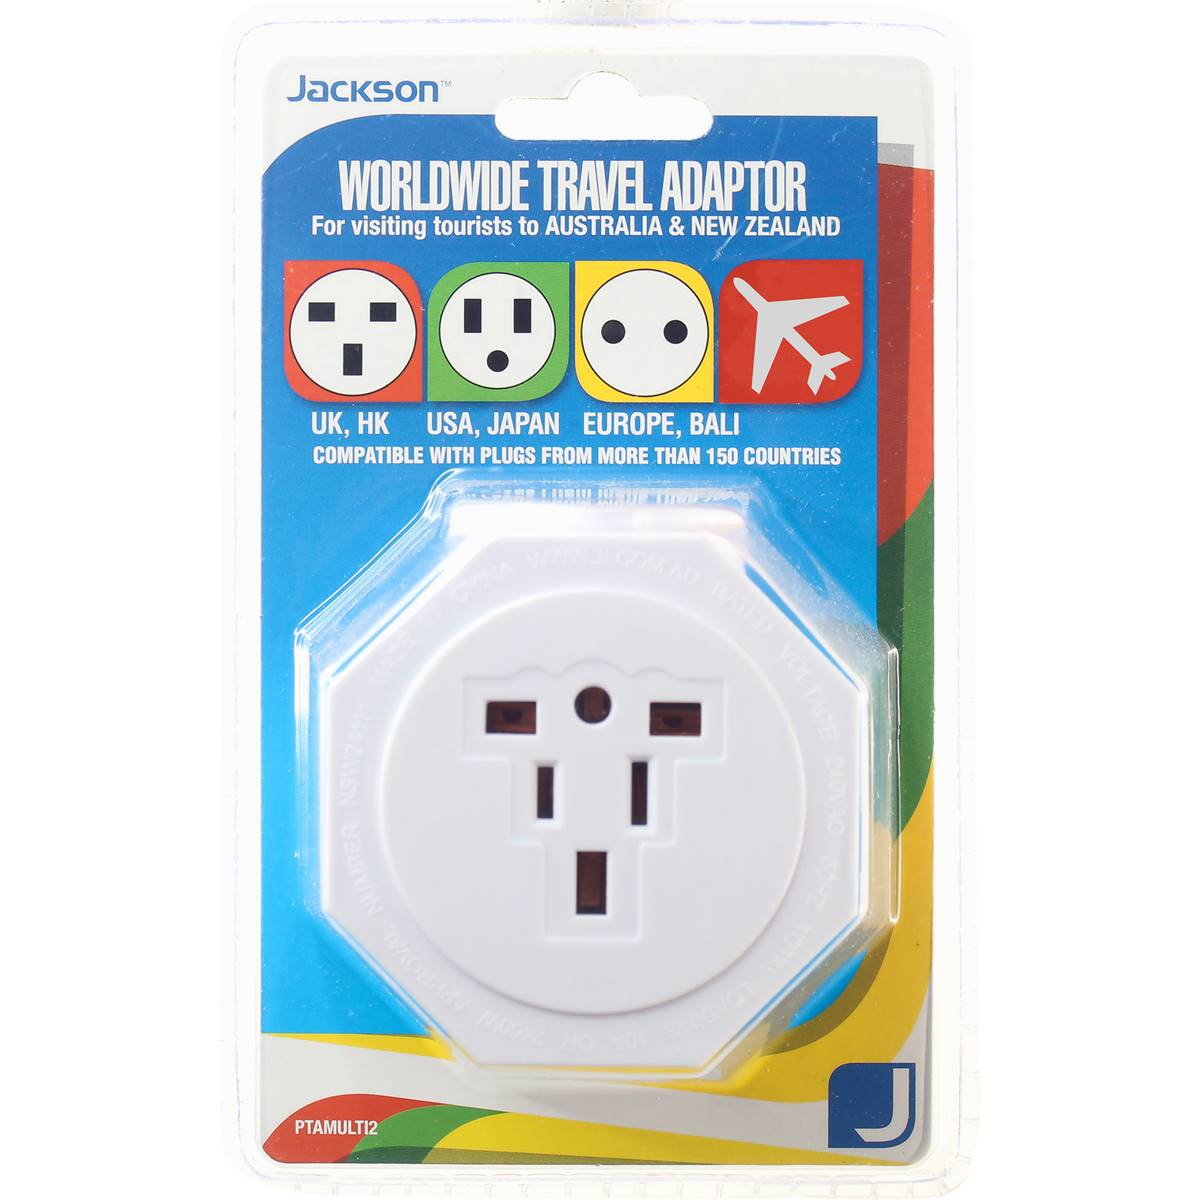 Coles Travel Adaptor Jackson Inbound Travel Adaptor Suits Usa And Uk Europe Each